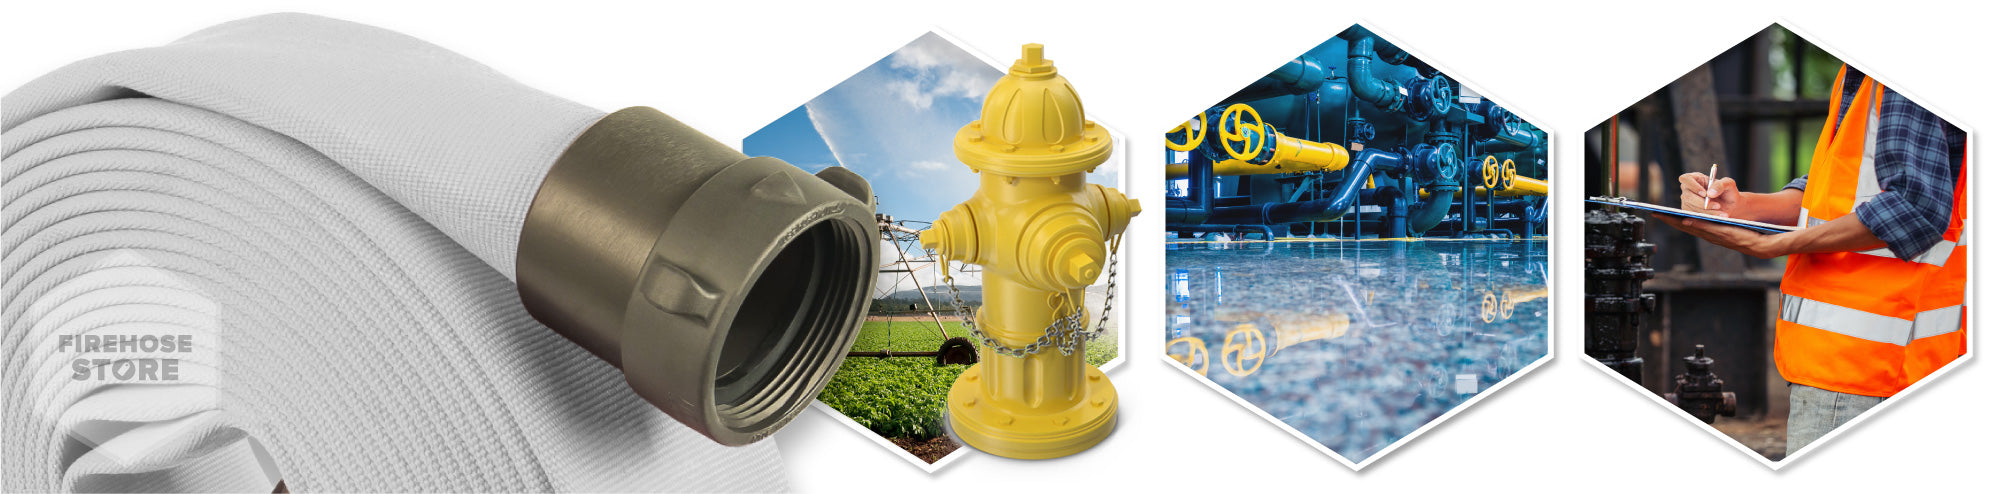 4 Inch x 100 Feet Fire Hydrant Hose Graphic Overview